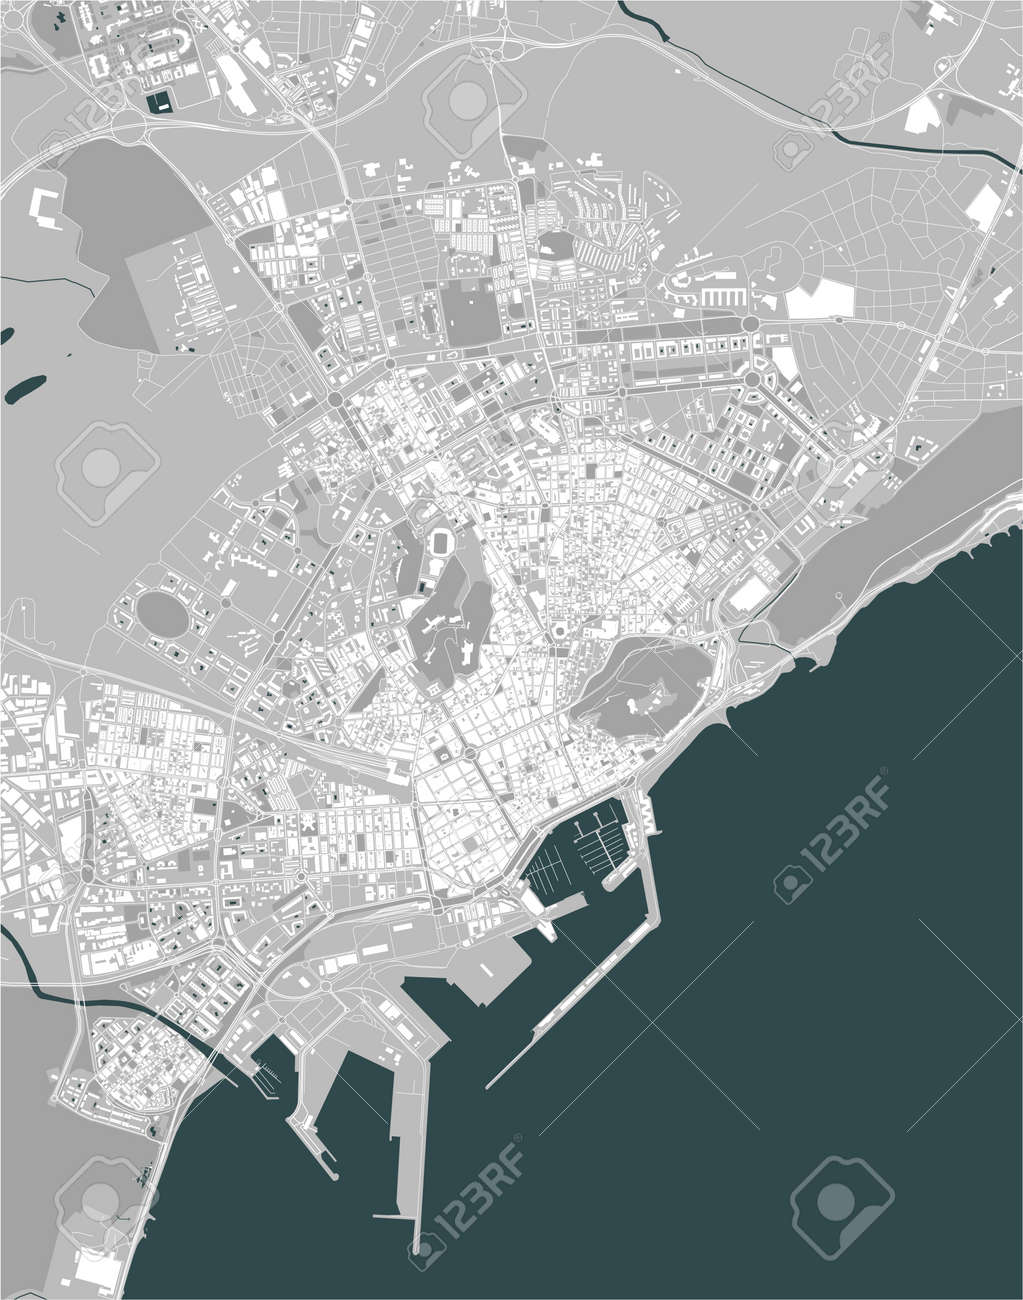 map of the city of Alicante, Spain - 172162552